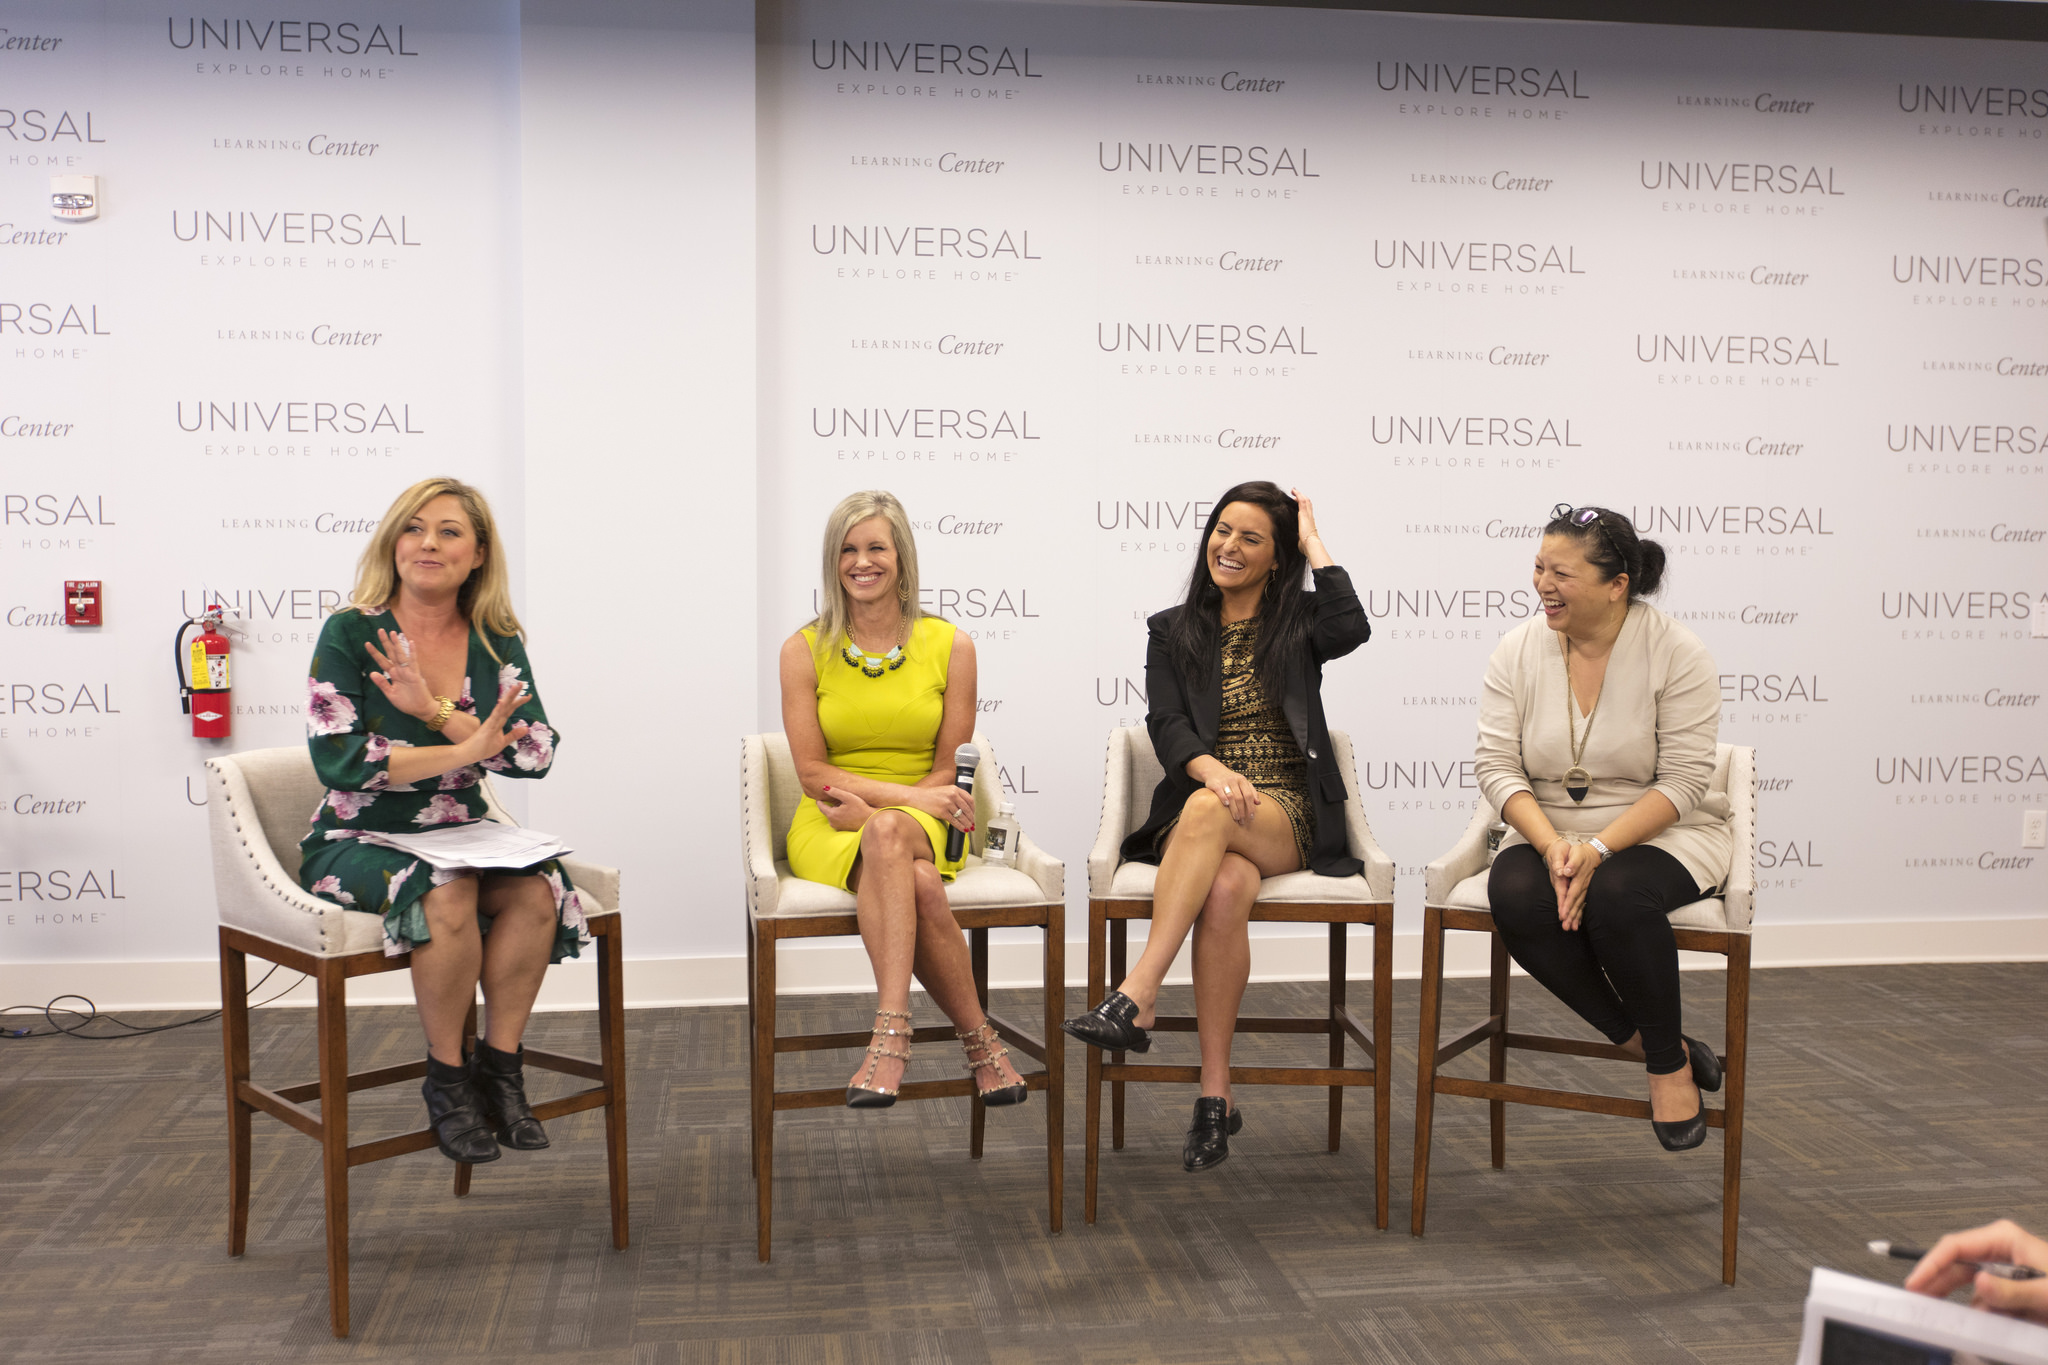 The 'Profitable Partnerships' panel: Kelly Edwards, Kristin Drohan, Reisa Elden and Jeanne Chung